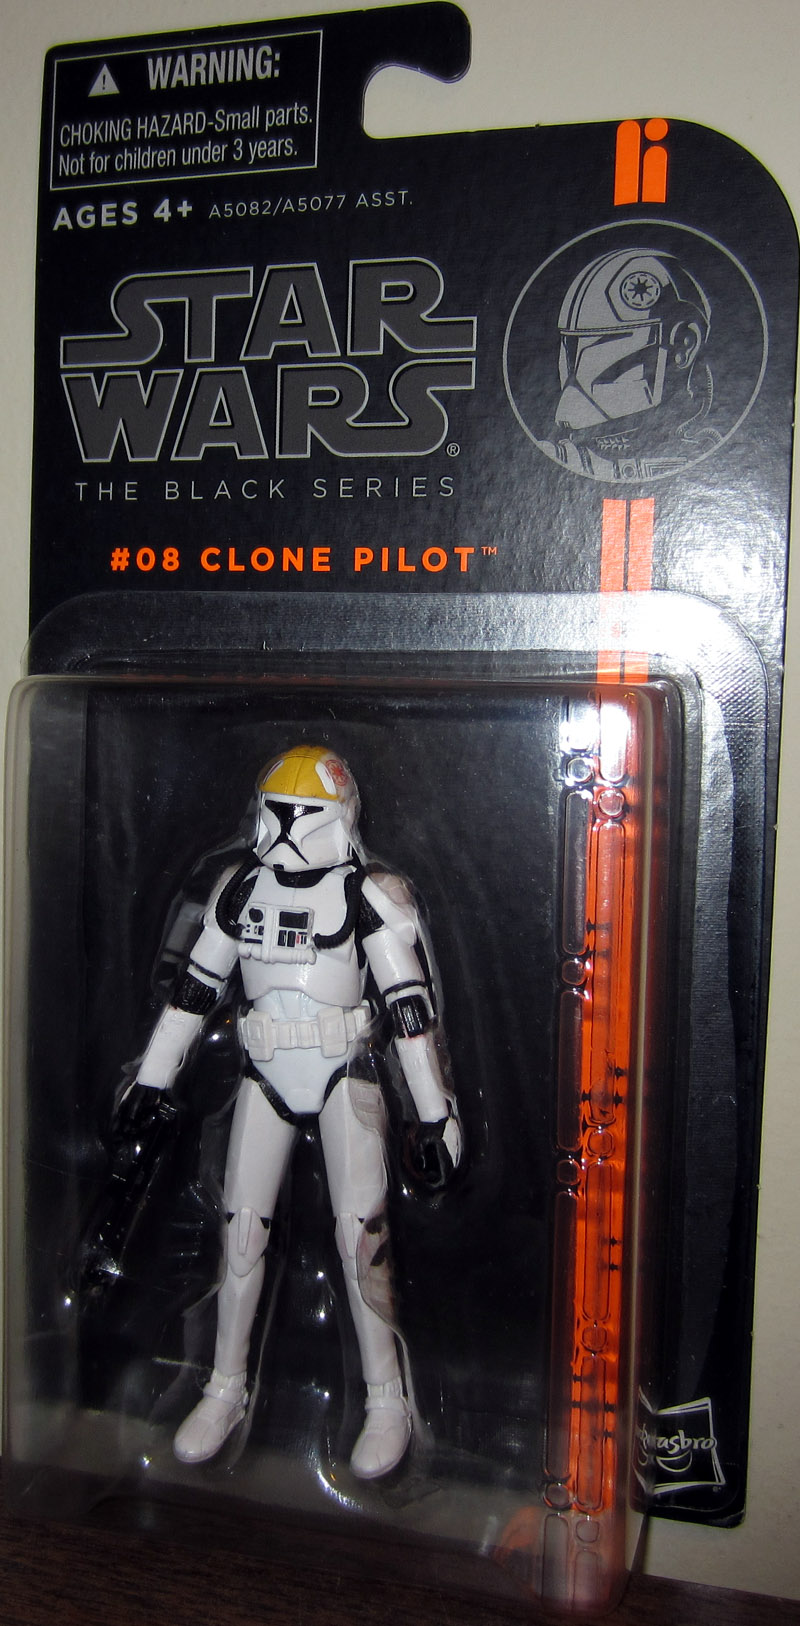 Clone Pilot (The Black Series, #08)